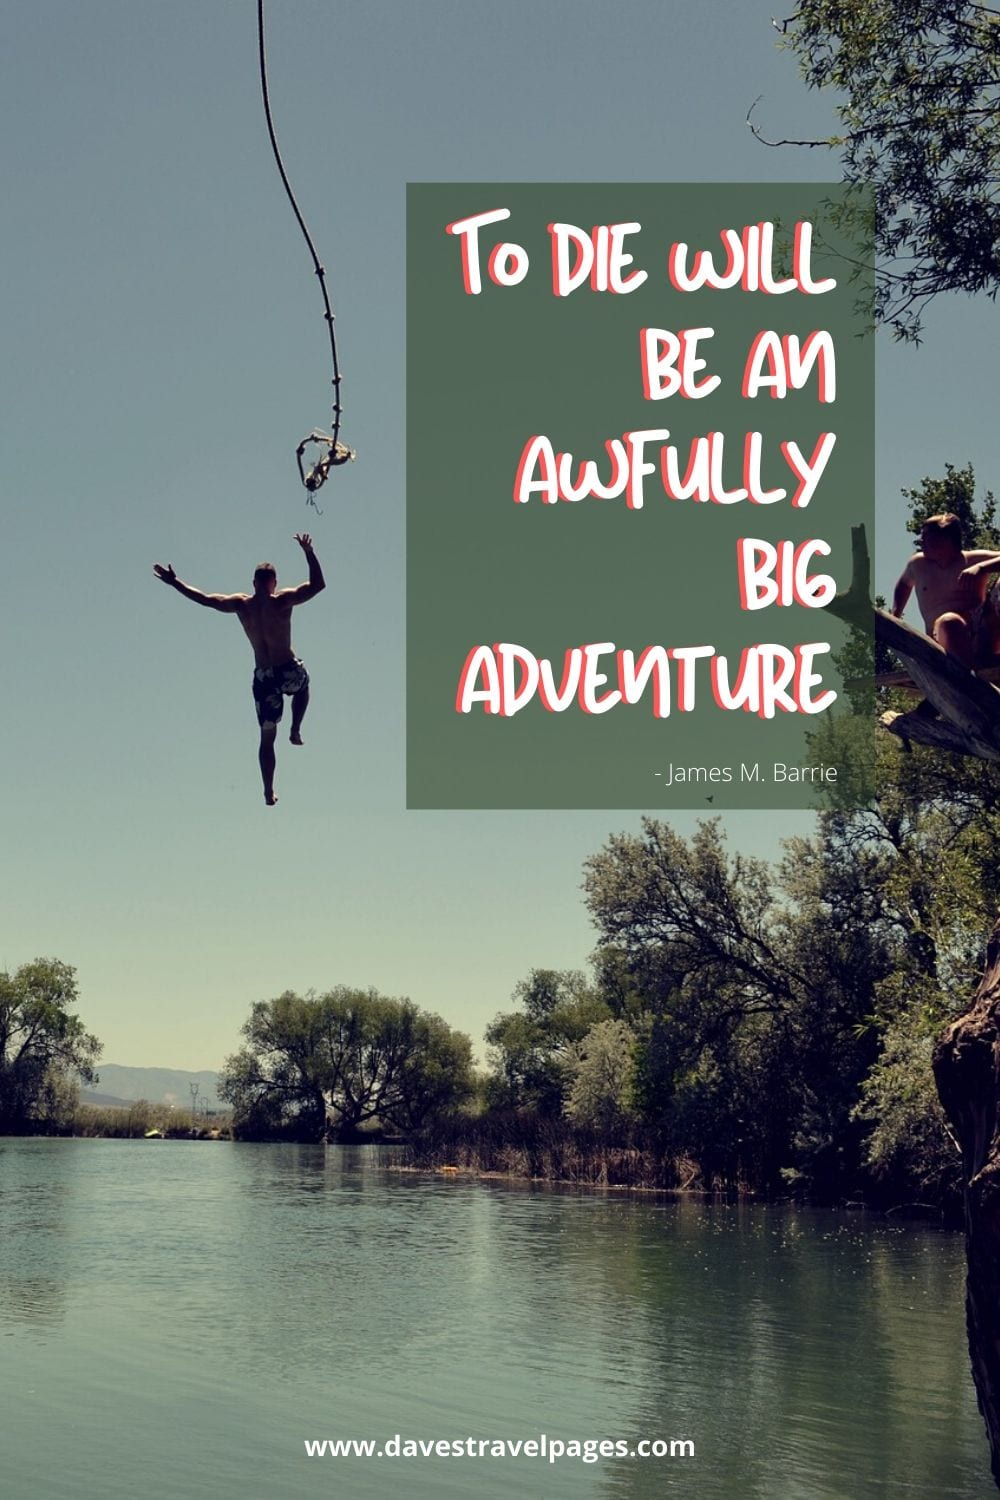 To die will be an awfully big adventure. James M. Barrie